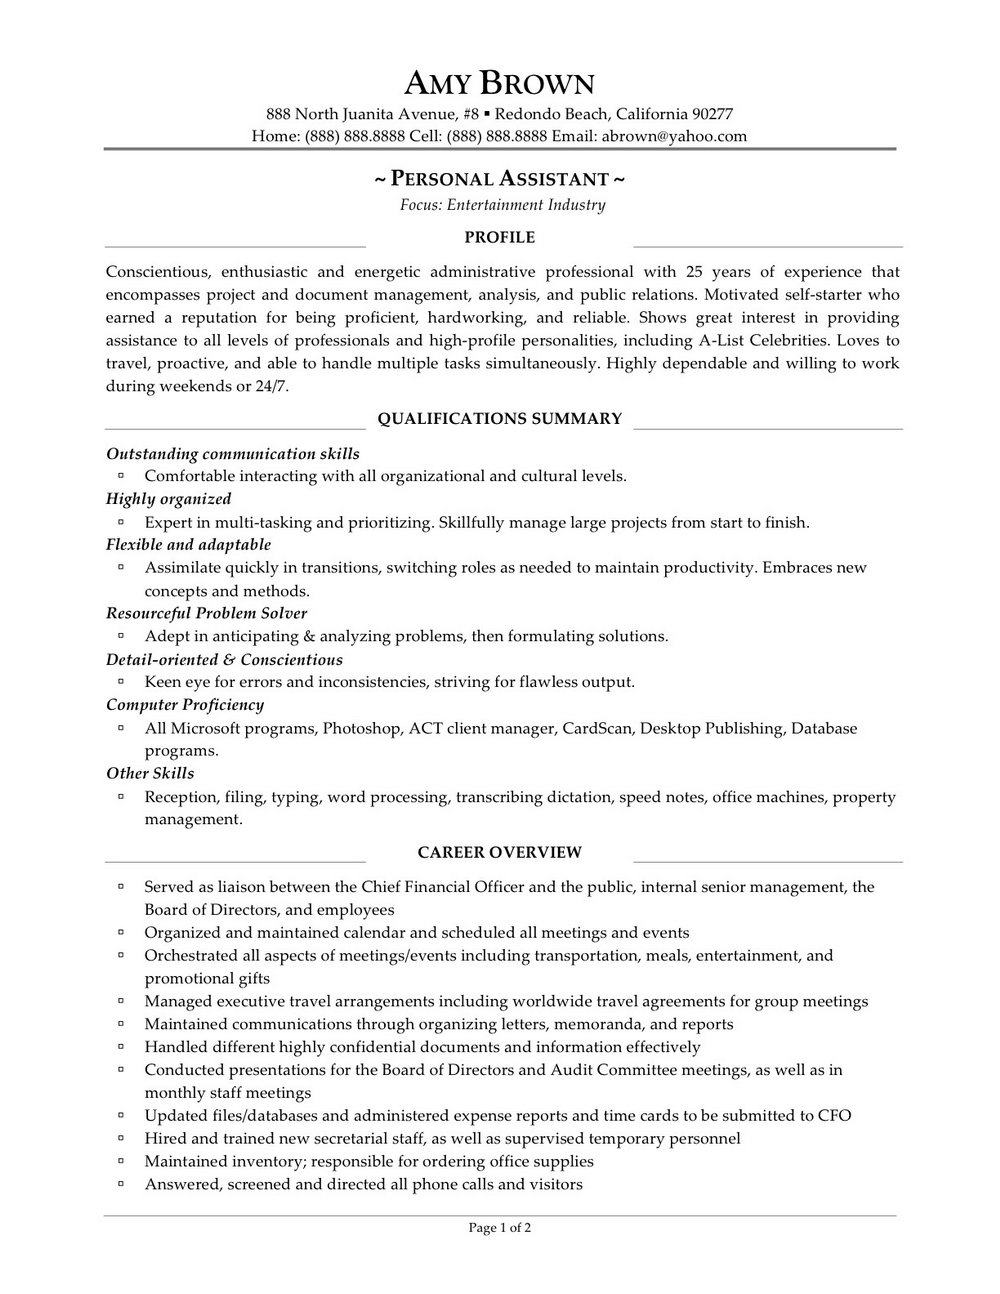 Free Executive Assistant Resume Templates